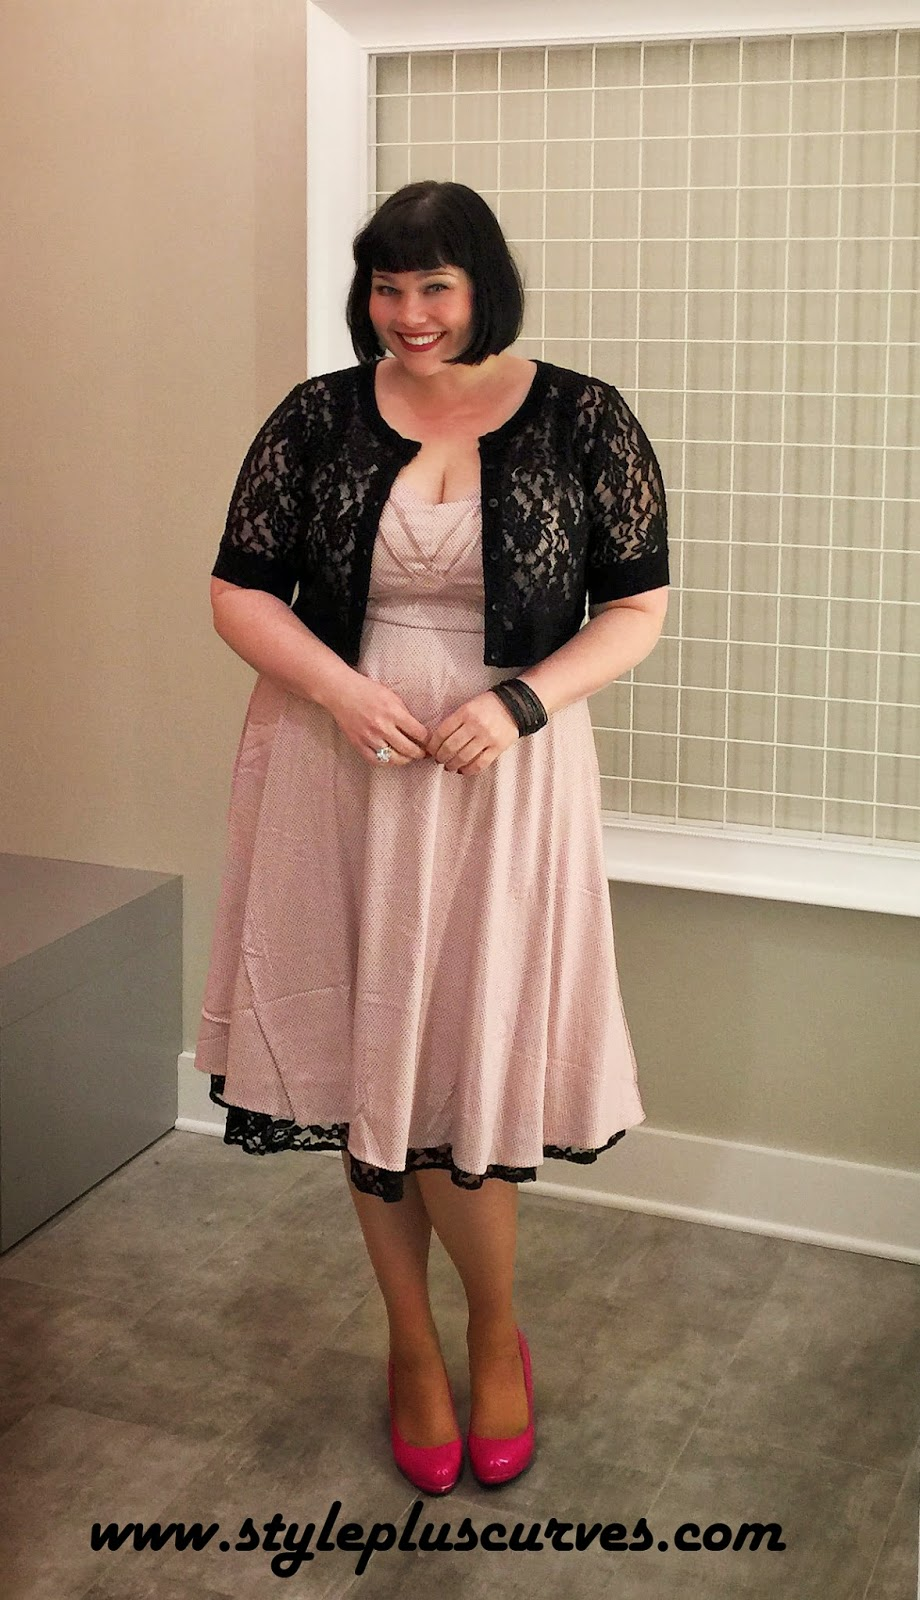 Amber from Style Plus Curves in a retro polka dot dress at the Torrid in Chicago